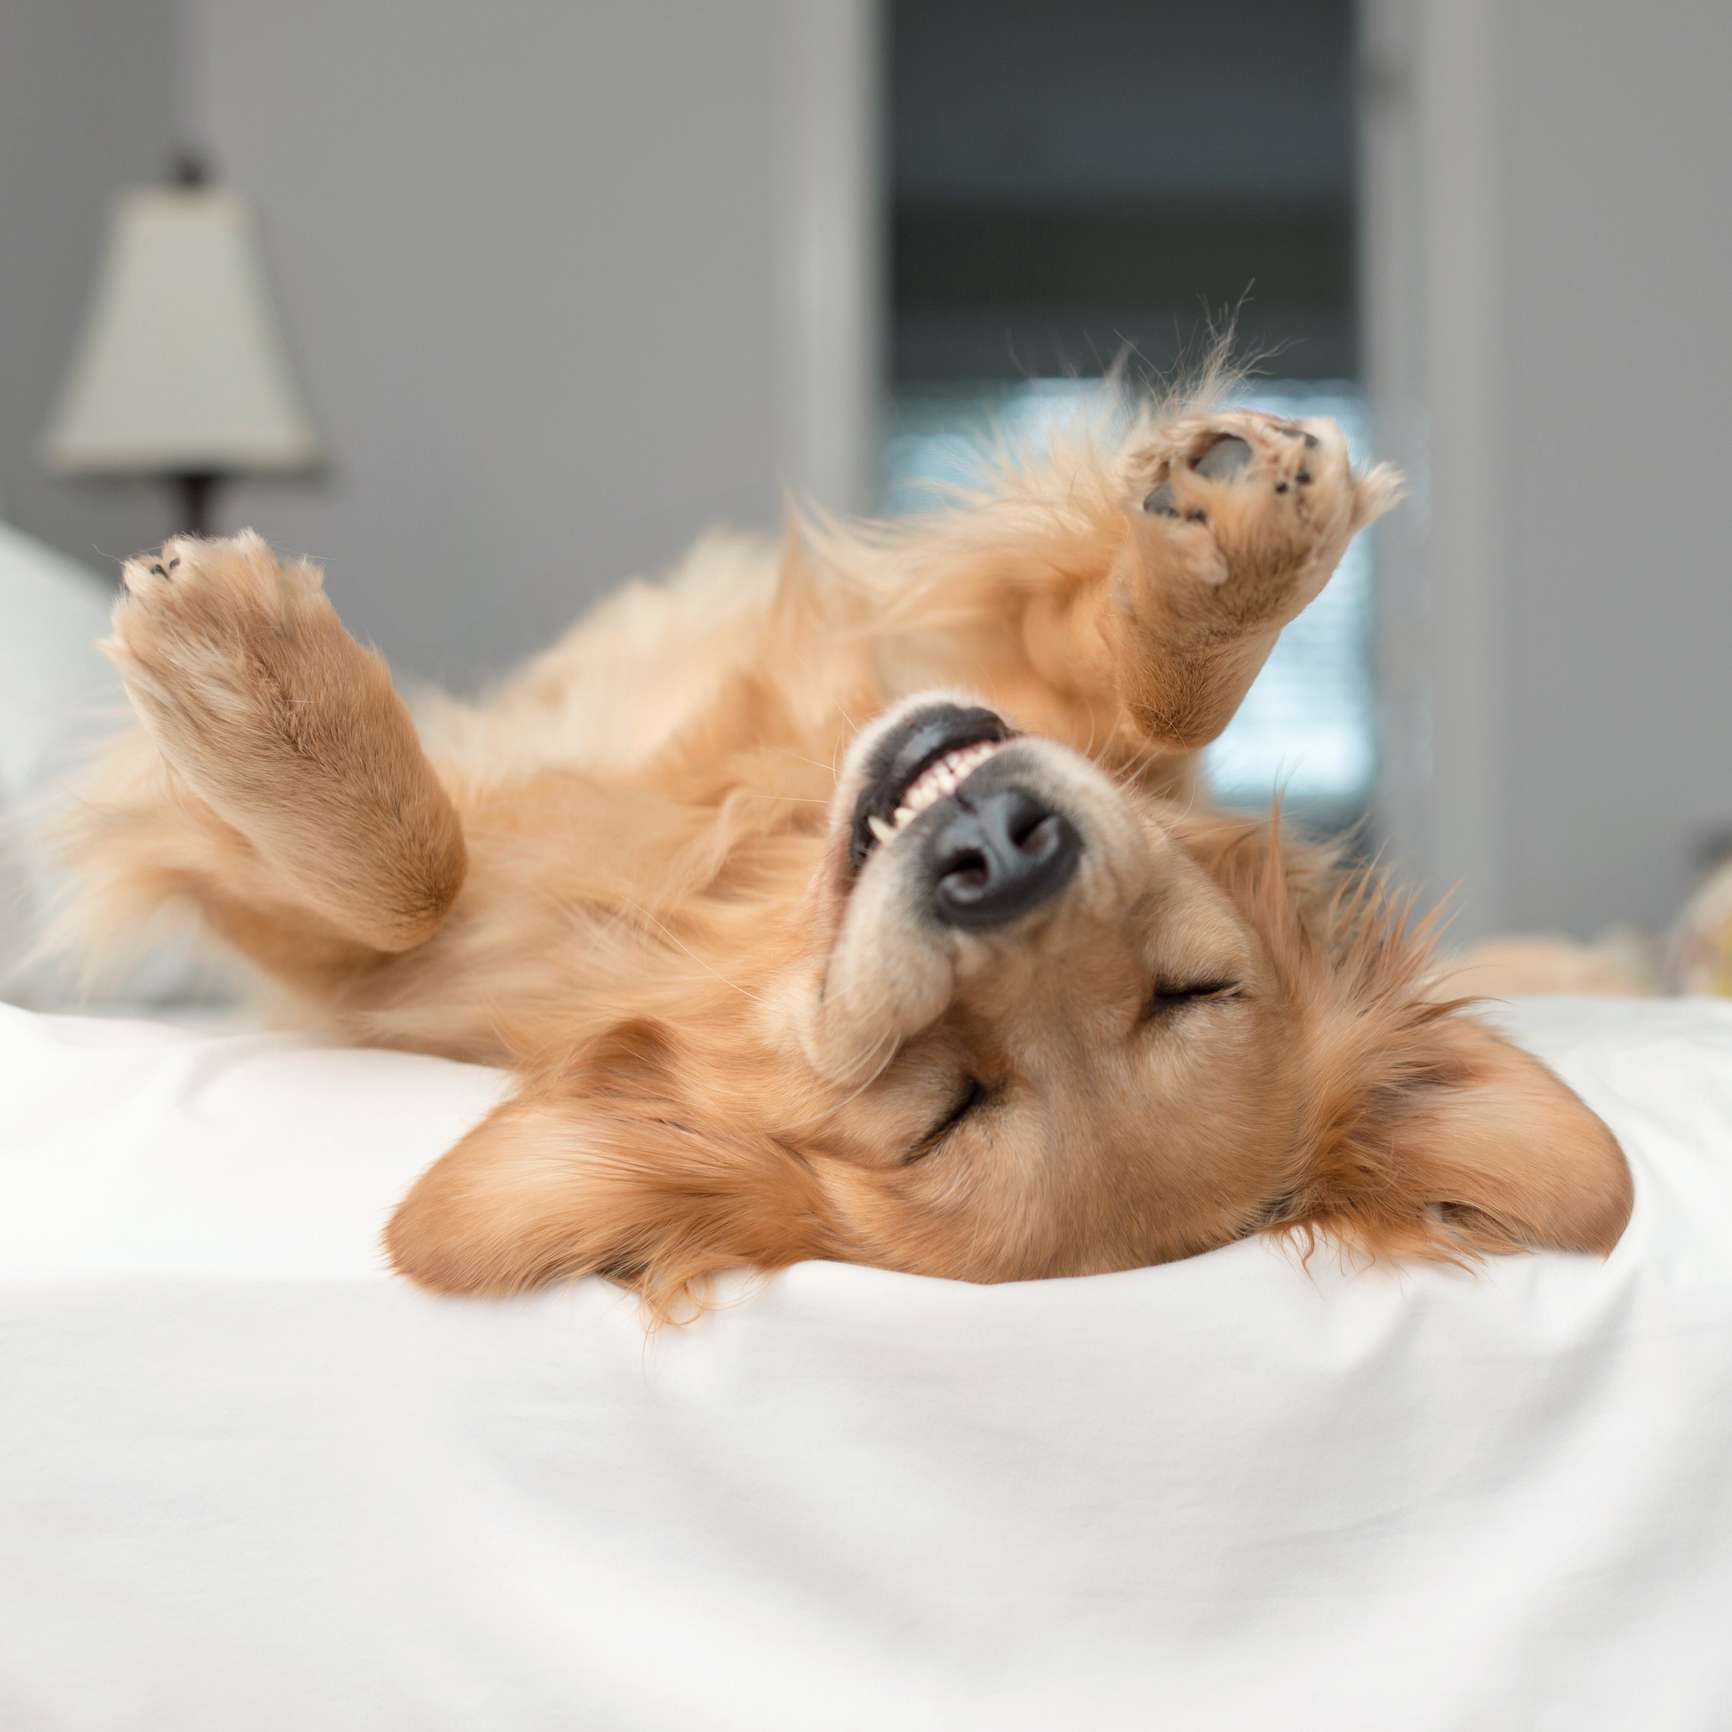 A Golden Retreiver with a Goofy Grin upside down on a bed